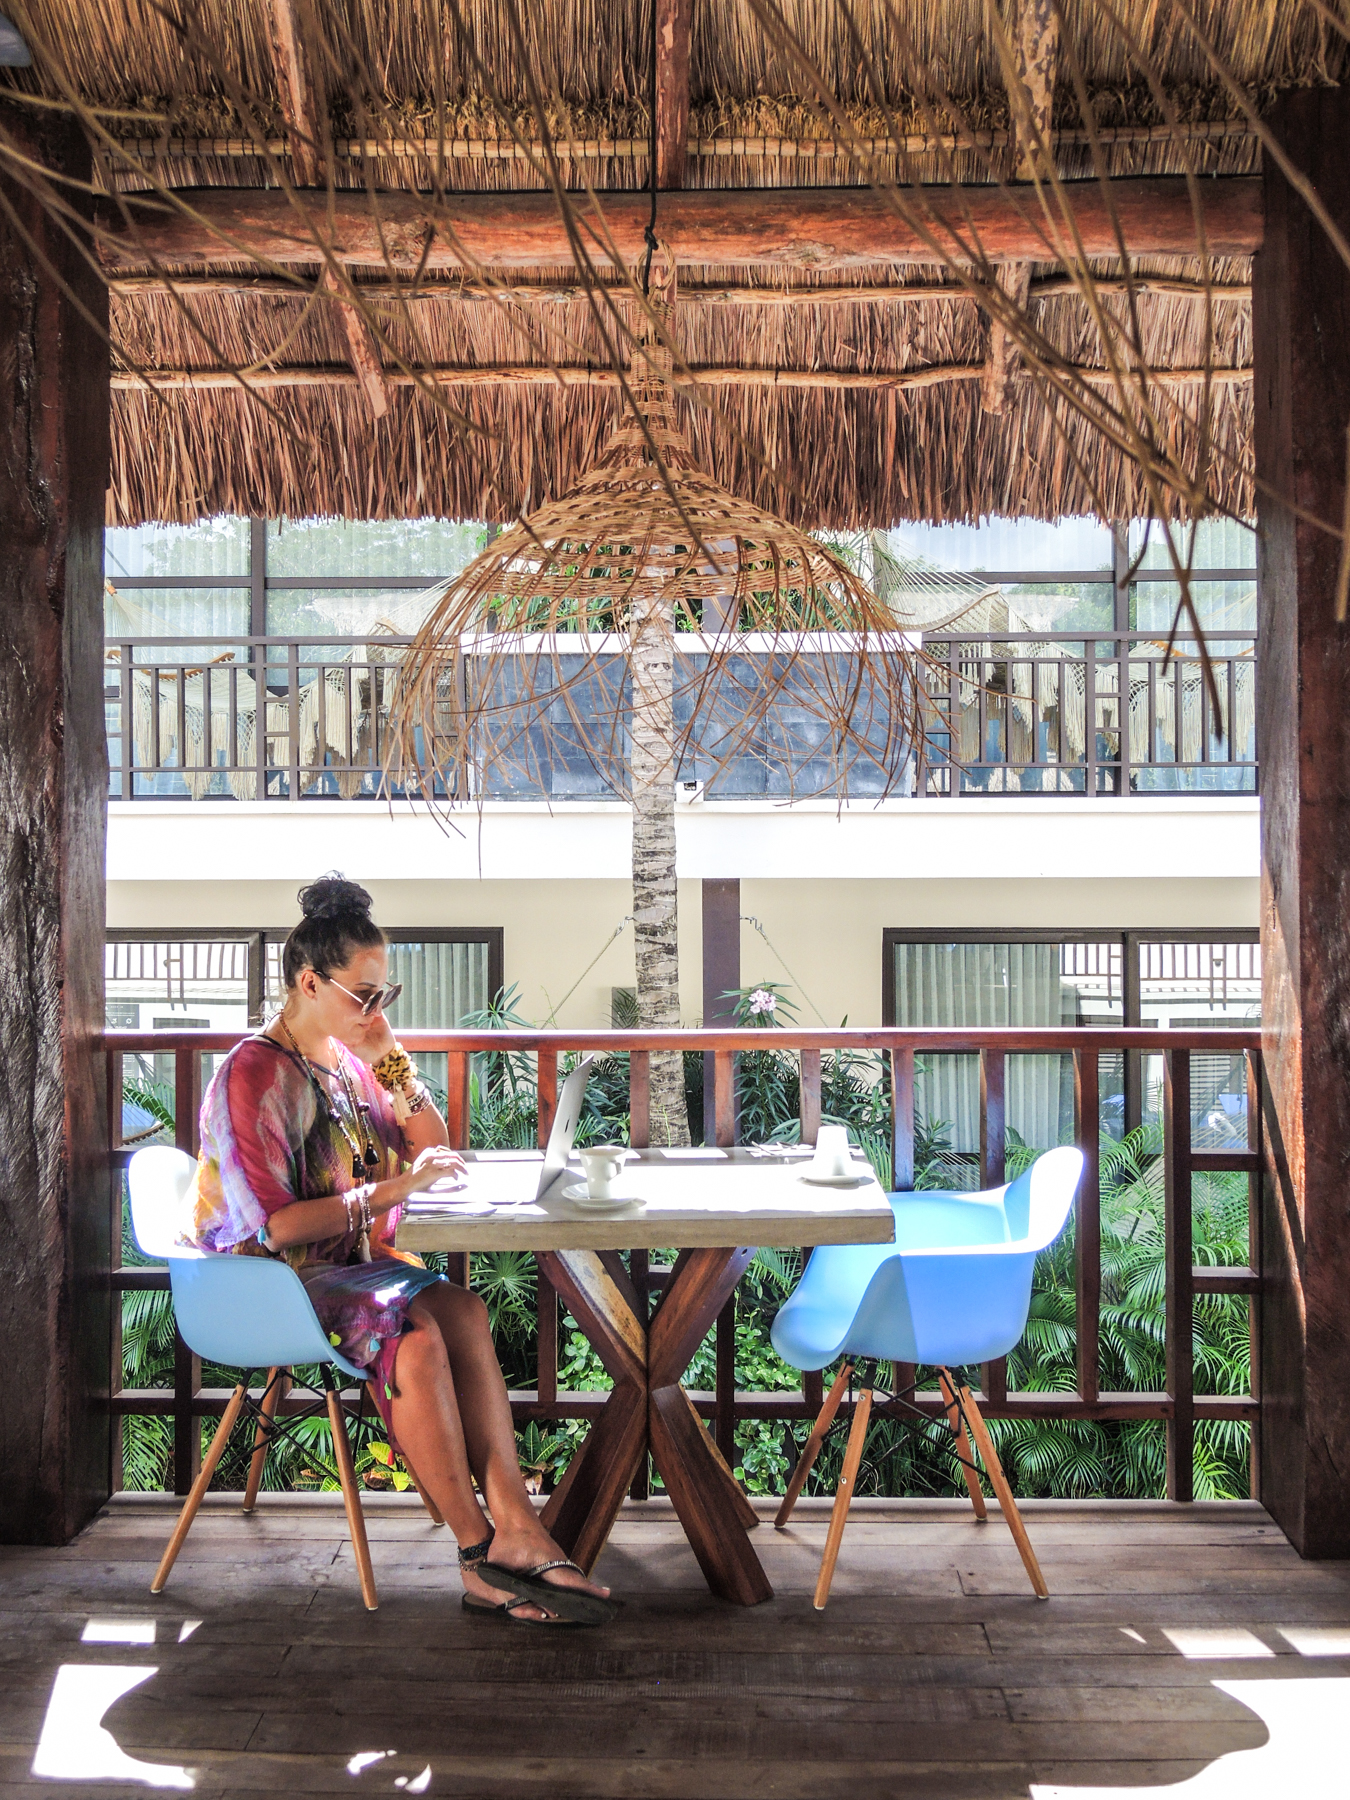 WORKING HARD AT THE BEAUTIFUL  KASA HOTEL  IN TULUM, MEXICO